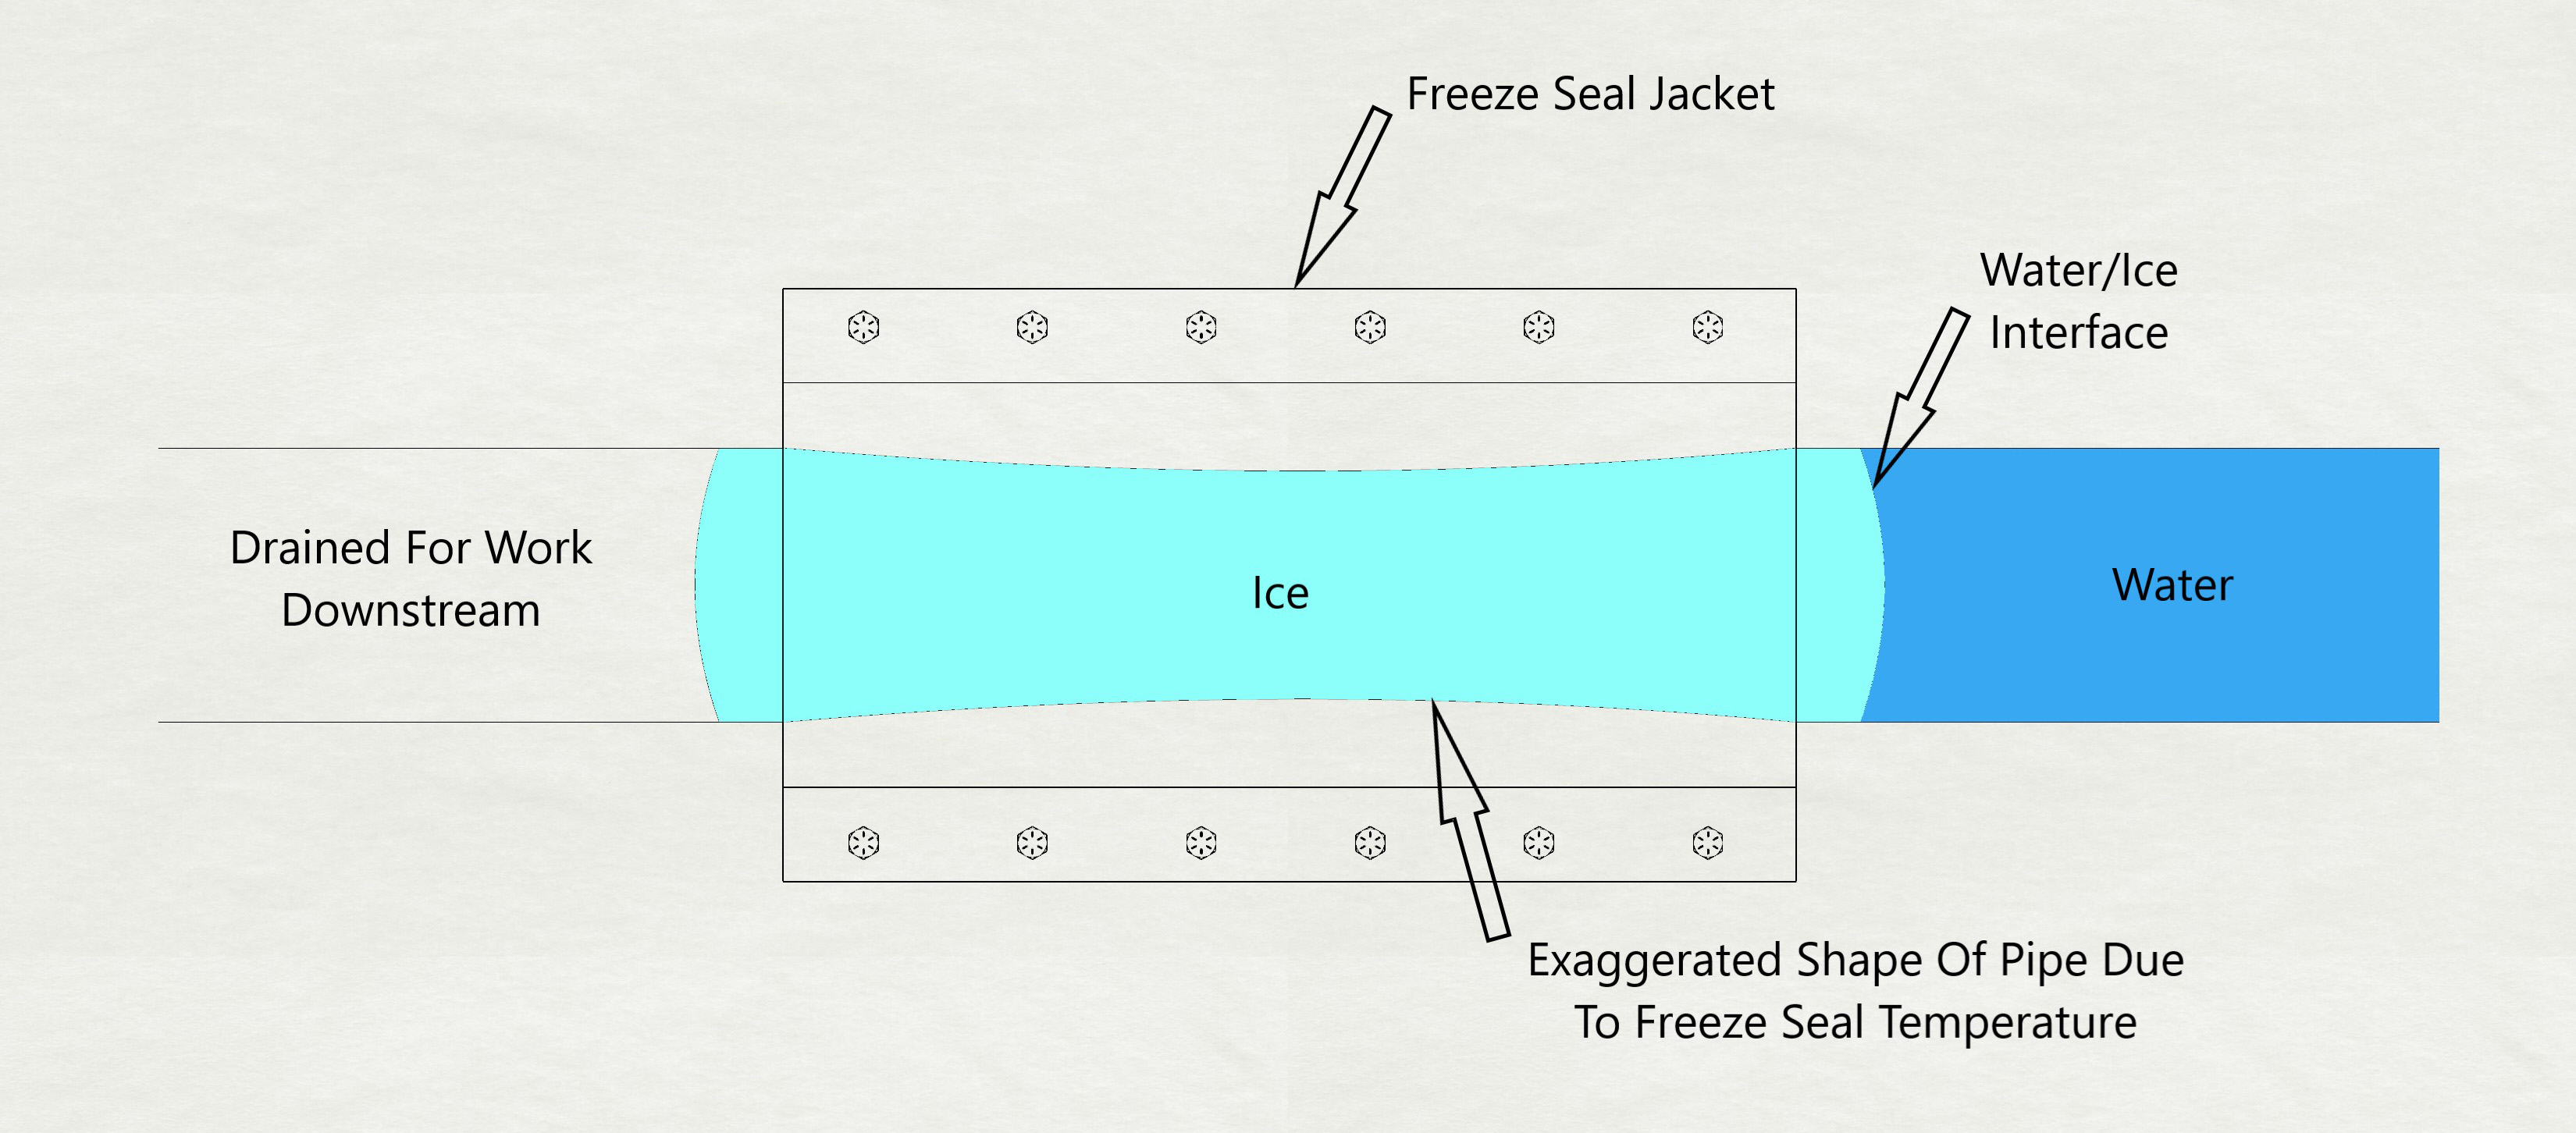 Freeze Seal Jacket